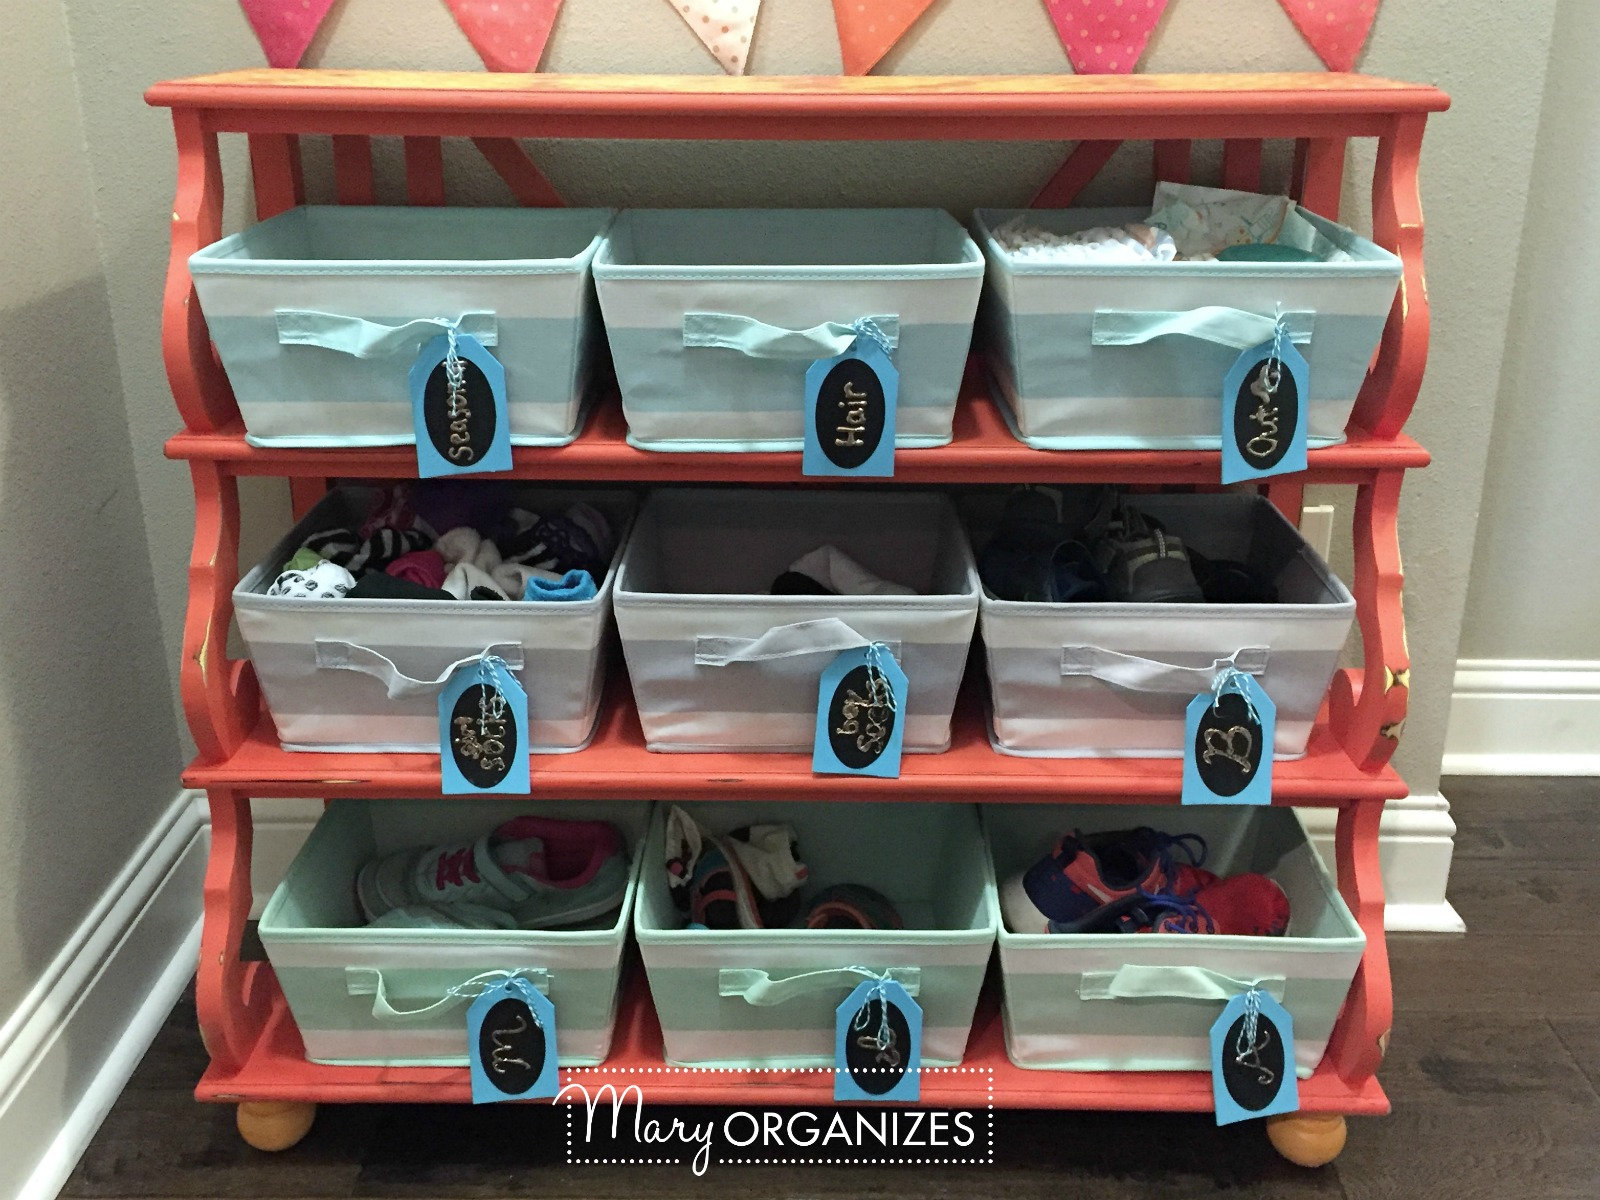 Kids Command Center - for hanging chore lists and more 7